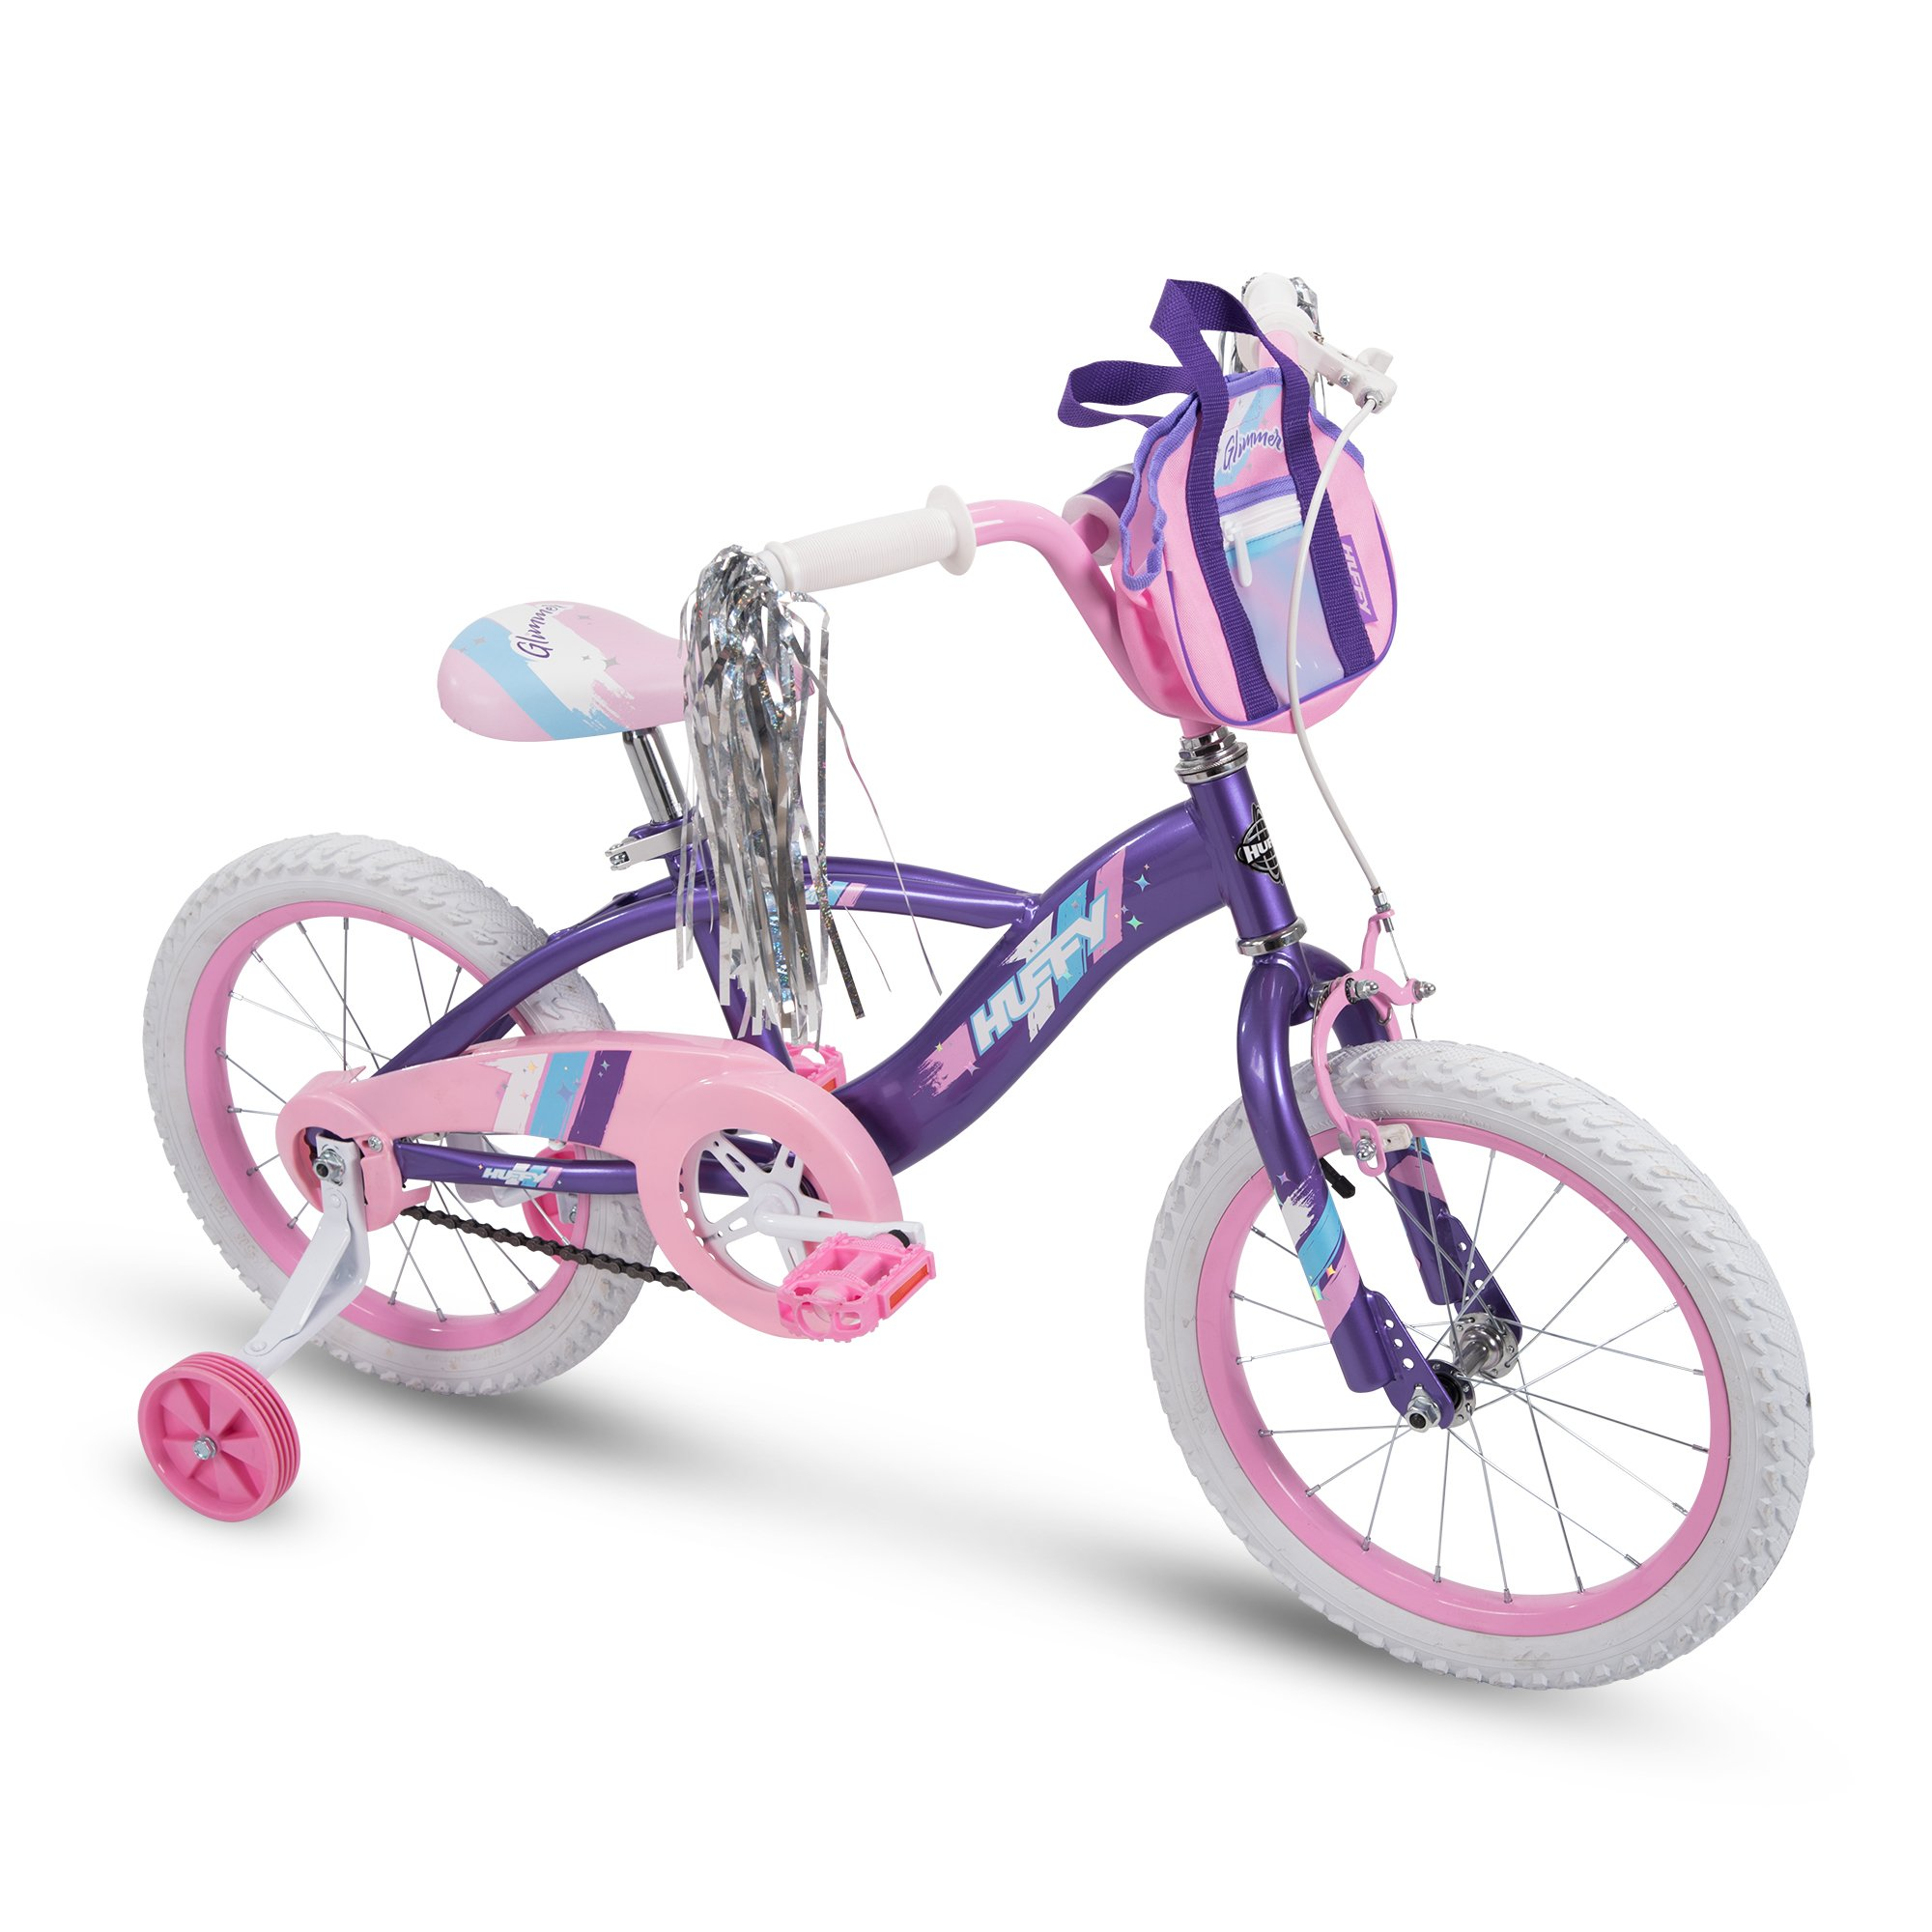 Huffy Glimmer Girls Bike with Training Wheels and Streamers